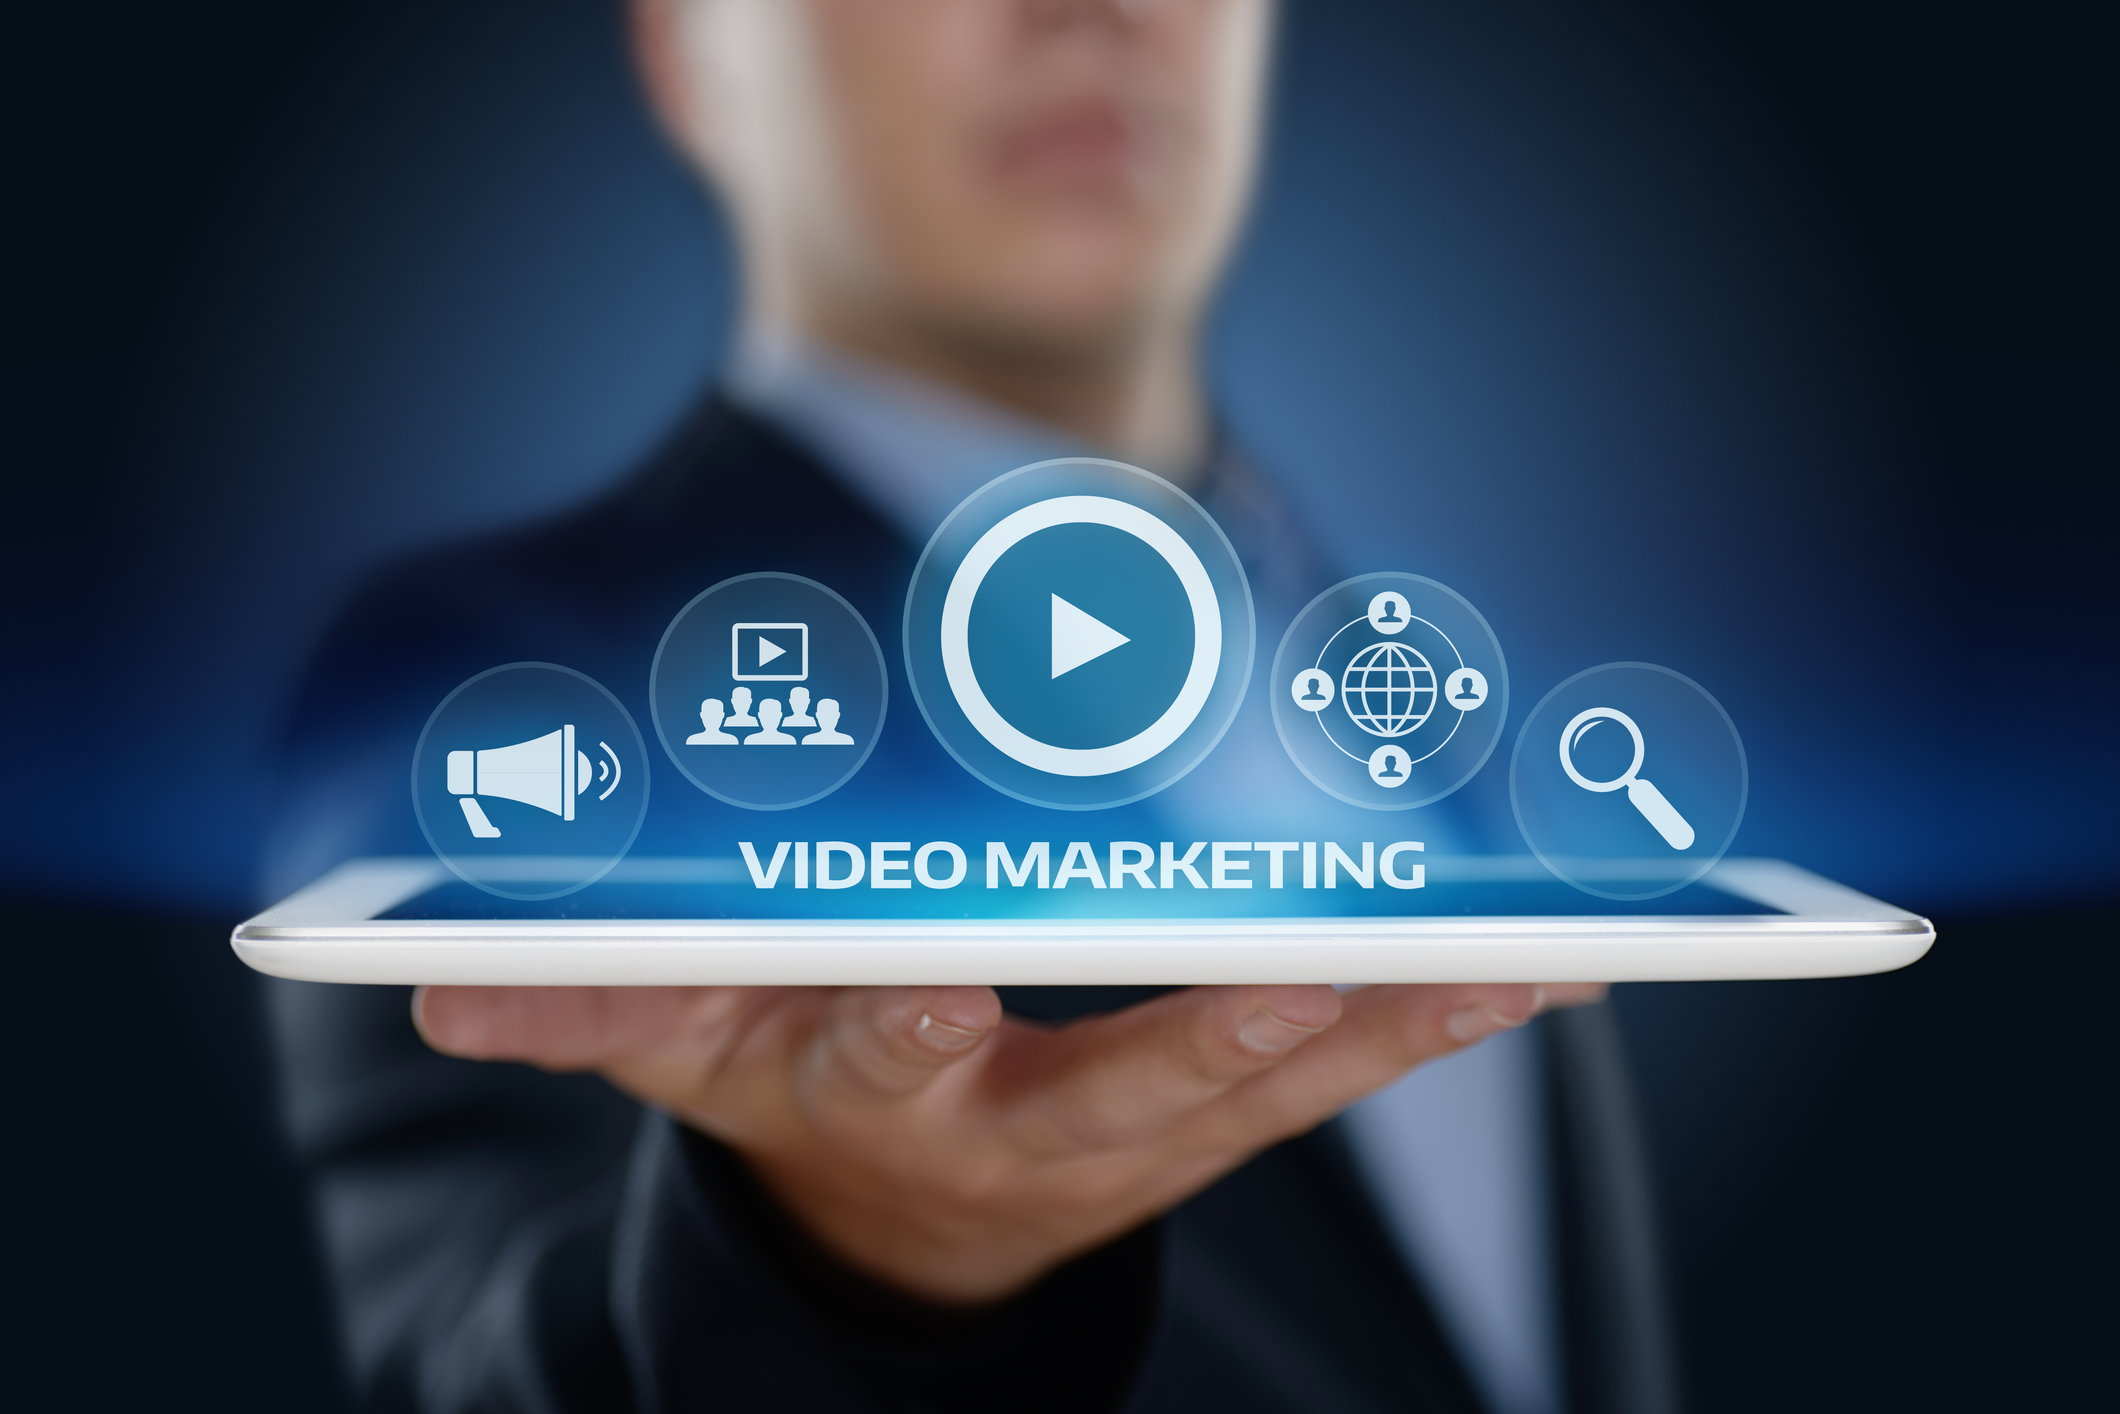 Industry Expert Tips to Kick Start Your Video Marketing ROI